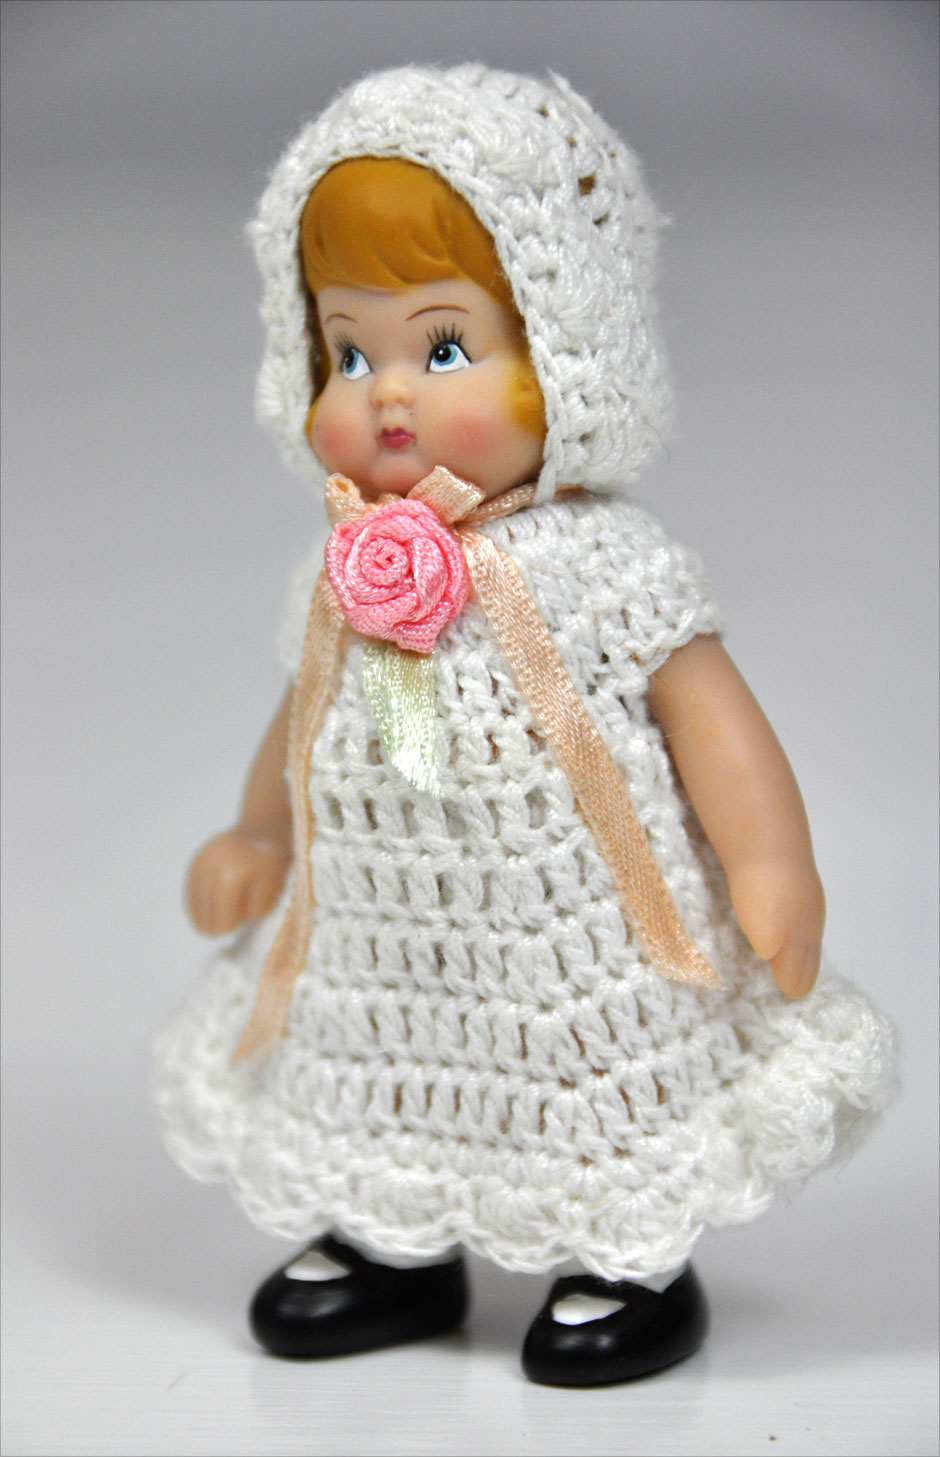 Miniature Doll Figurine 2